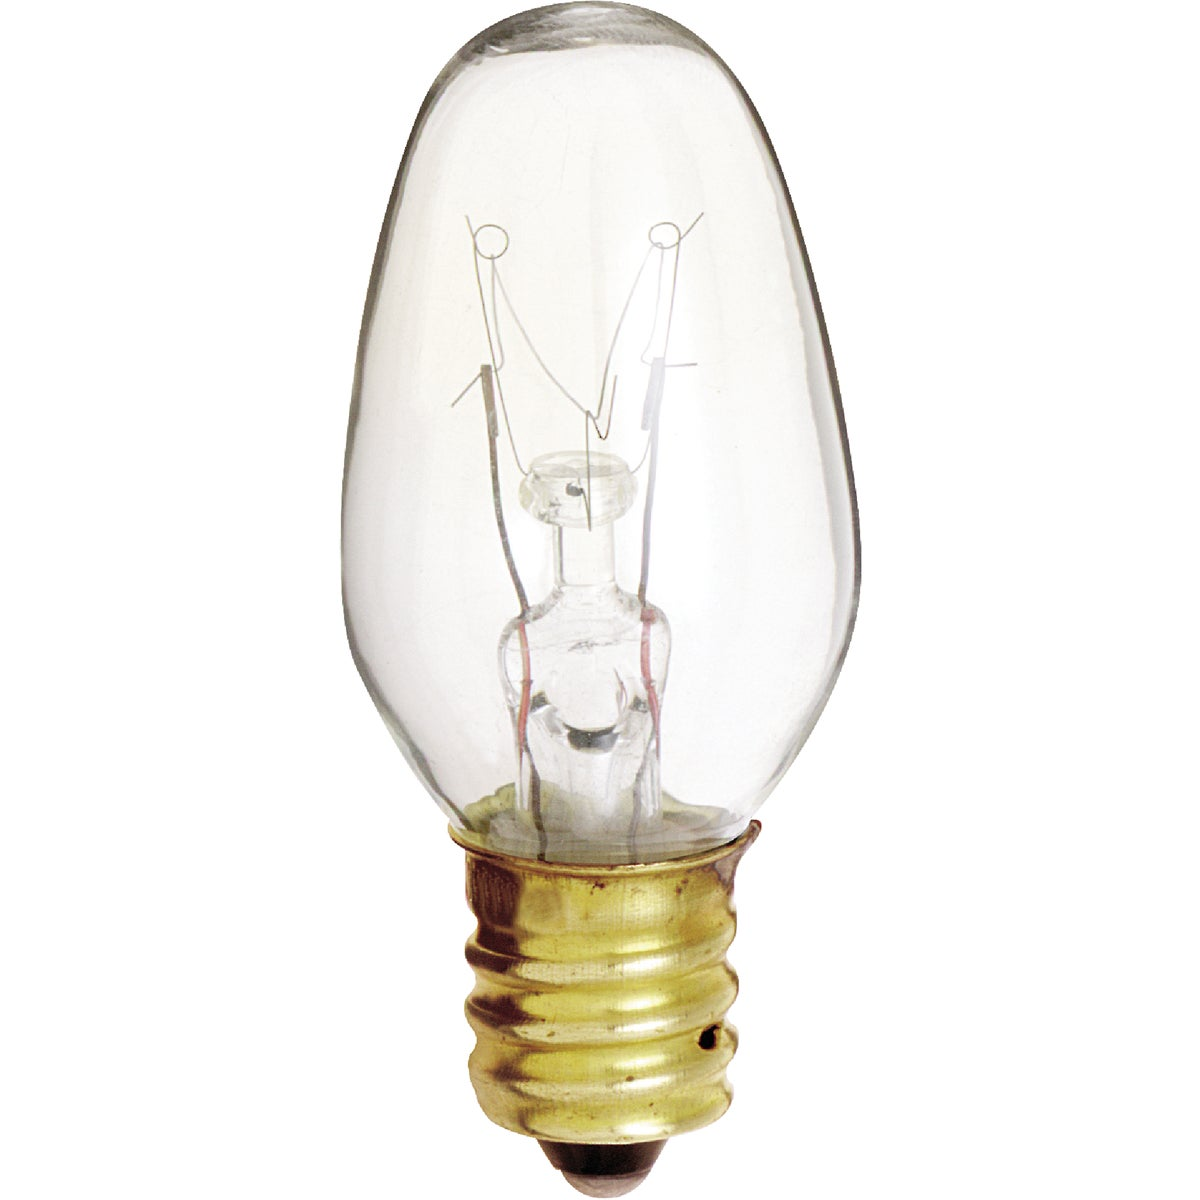 4W 4PK CLR NITELITE BULB - 20572 by G E Lighting